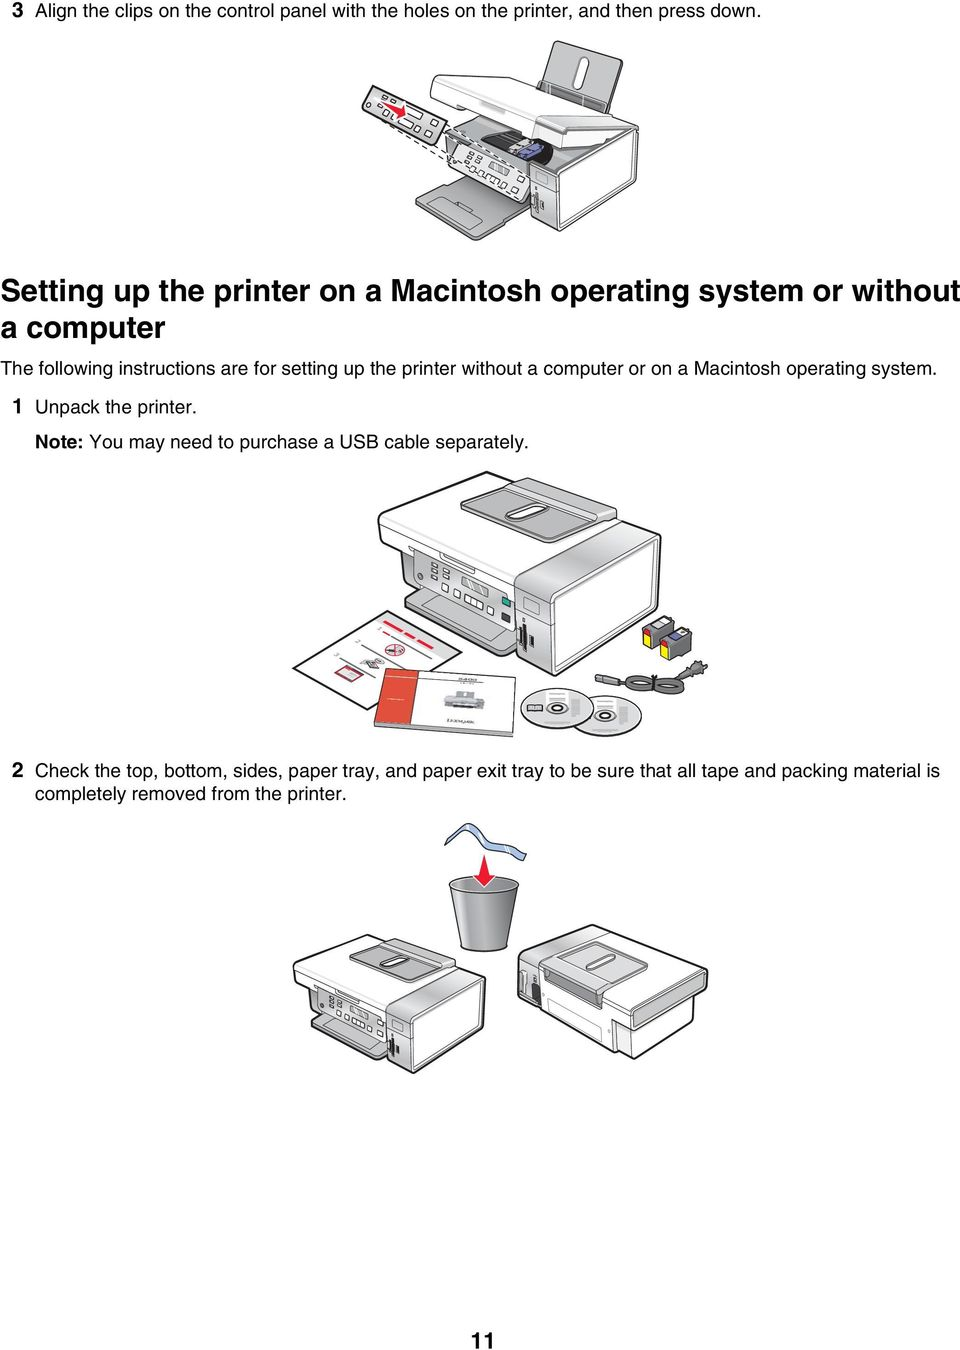 printer without a computer or on a Macintosh operating system. 1 Unpack the printer.